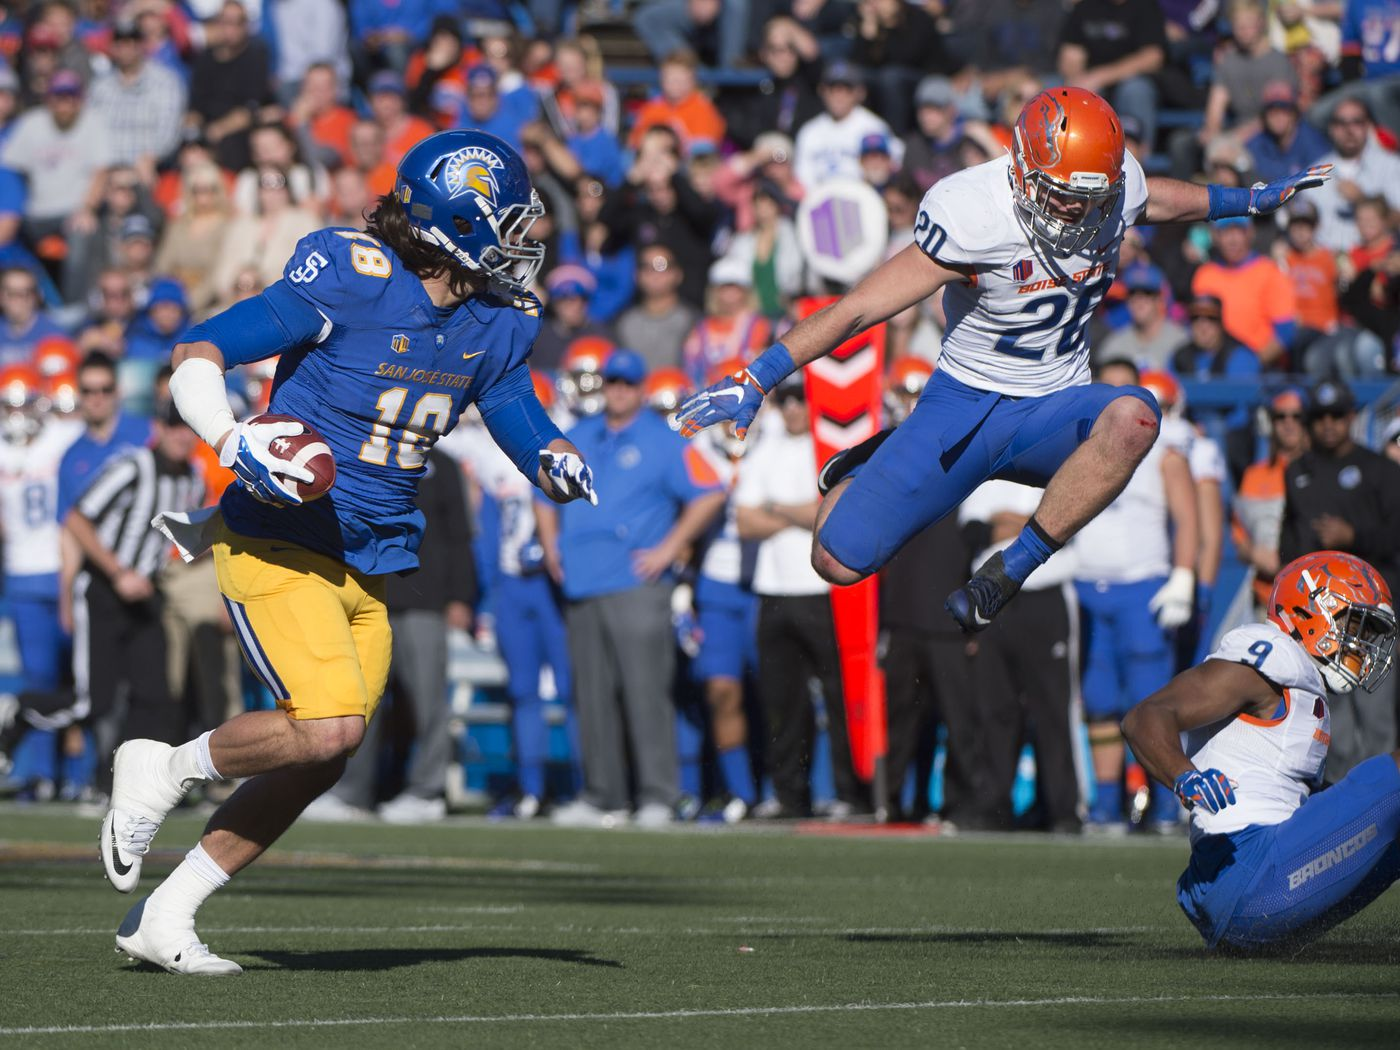 San Jose State football's recruiting means another special